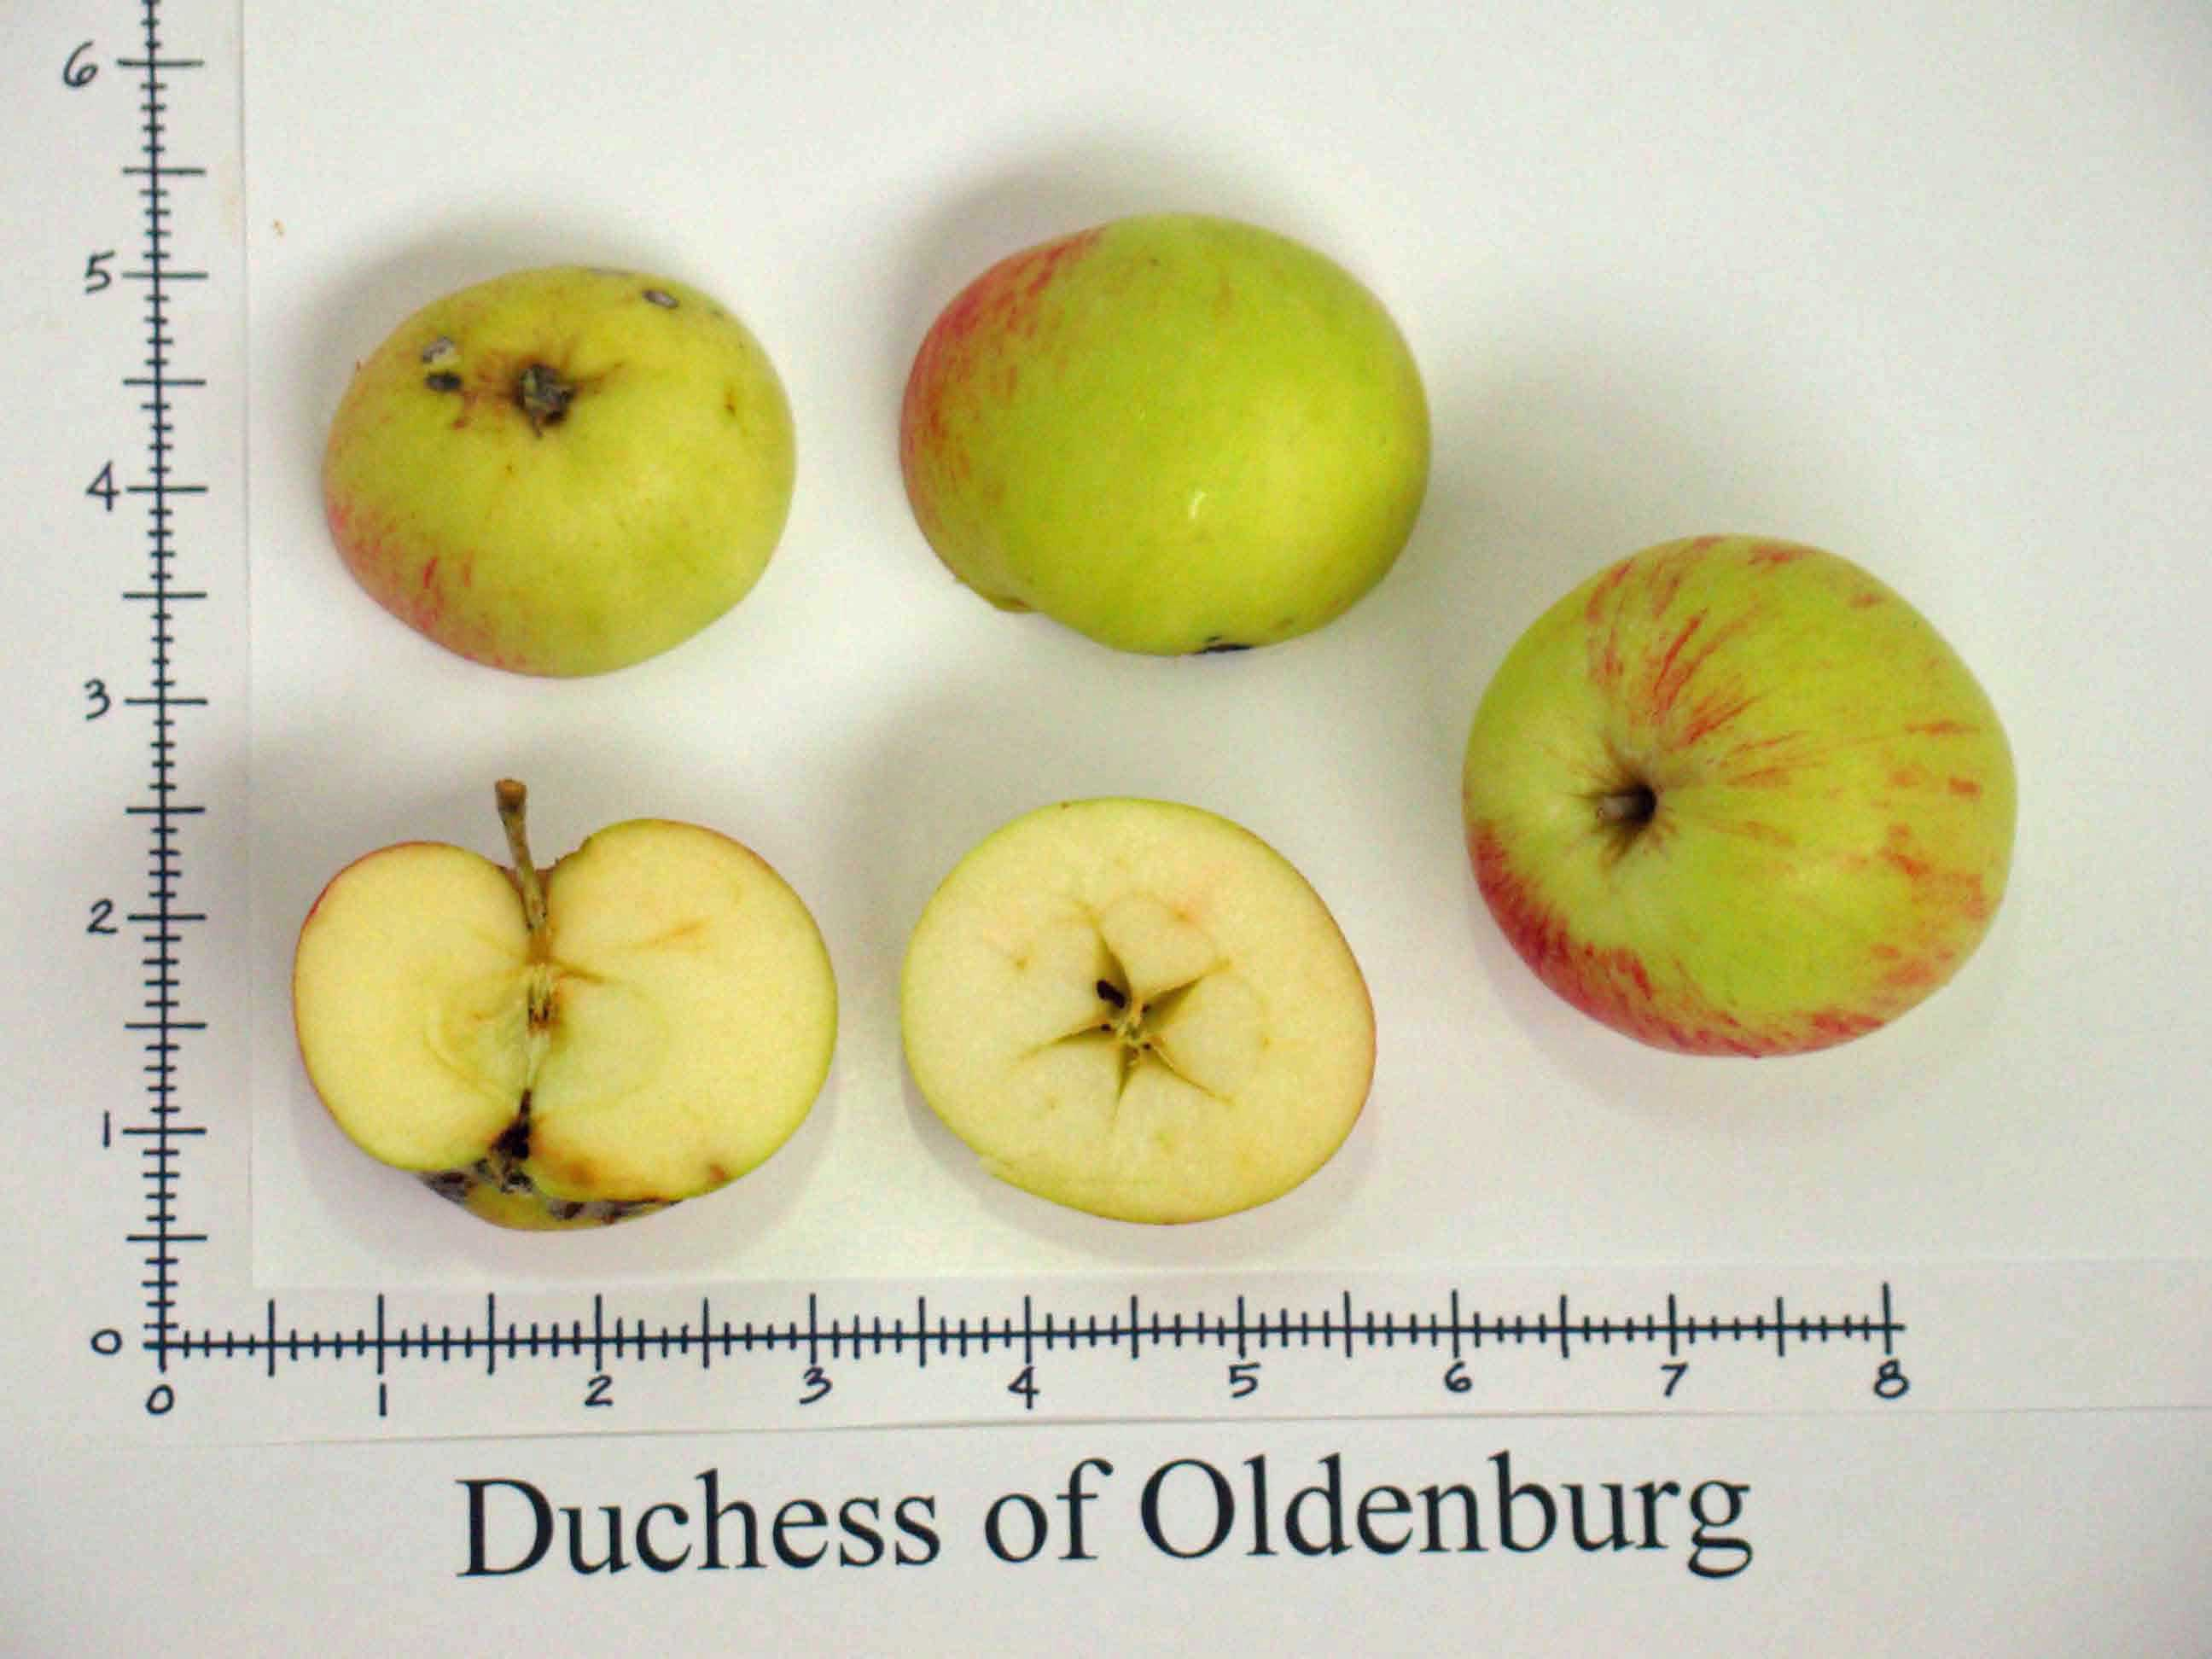 Duchess of Oldenburg